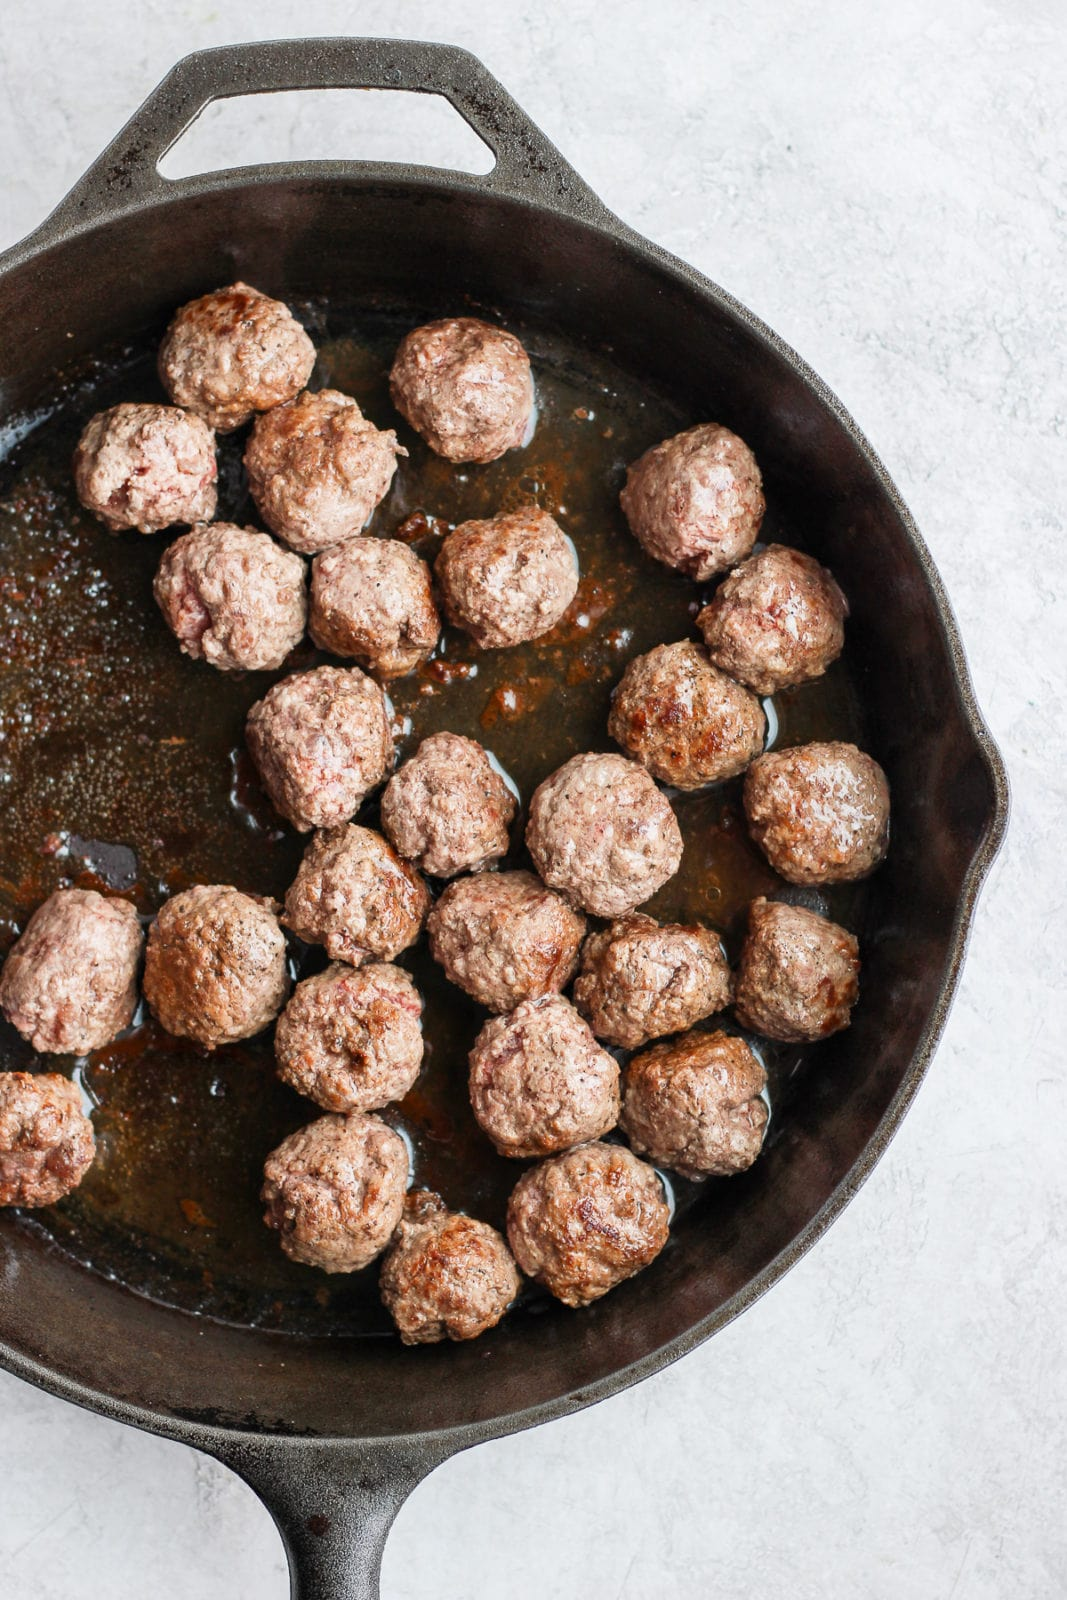 Gluten Free Dumplings and Meatballs (Paleo + Dairy Free) - the ultimate comfort food that is paleo, gluten-free and dairy-free! Kid-approved! #paleodumplings #glutenfreedumpings #glutenfreedumplingrecipe #paleorecipes #grainfree #meatballs